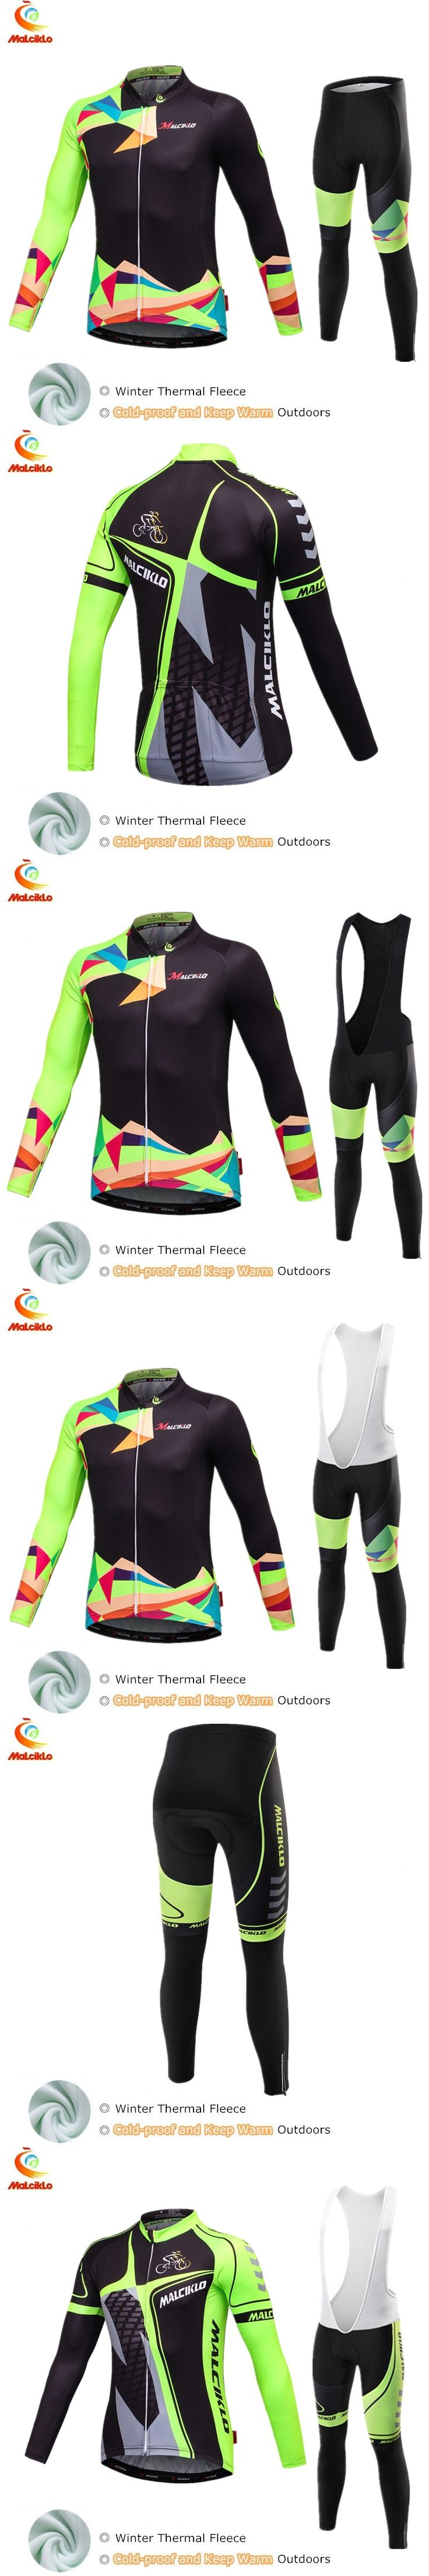 Malciklo Maillot Cycling Sets Clothing Winter Thermal Cycling Jersey 2017 Pro Team Bike Wear Clothes Ropa Ciclismo Invierno